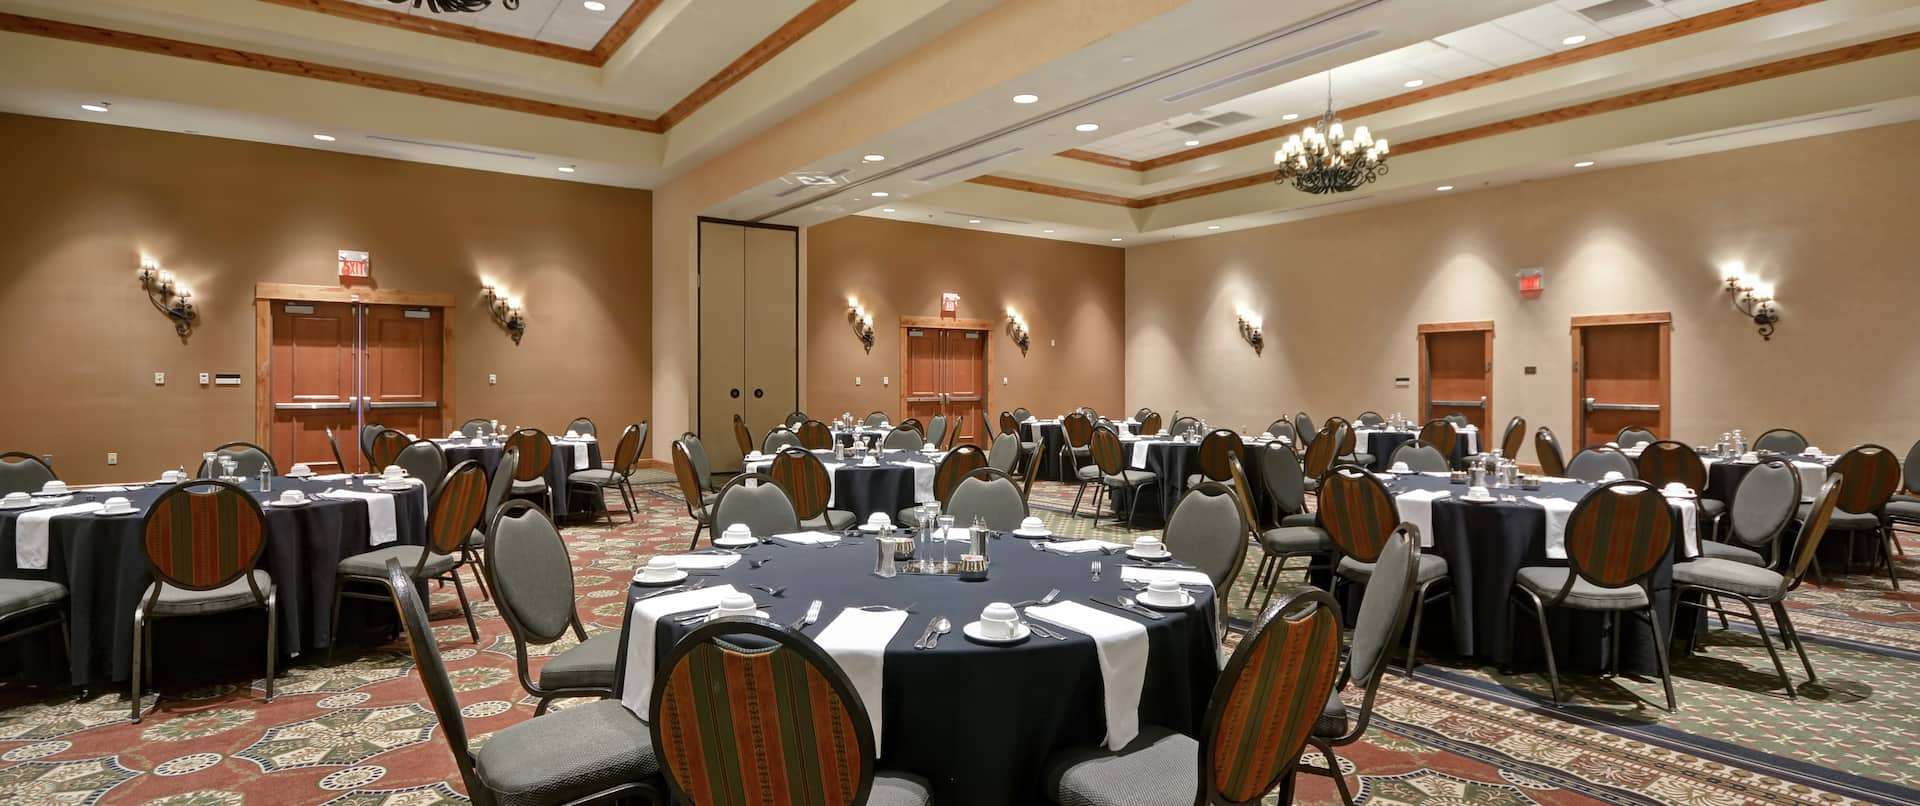 Meeting Room with Banquet Setup